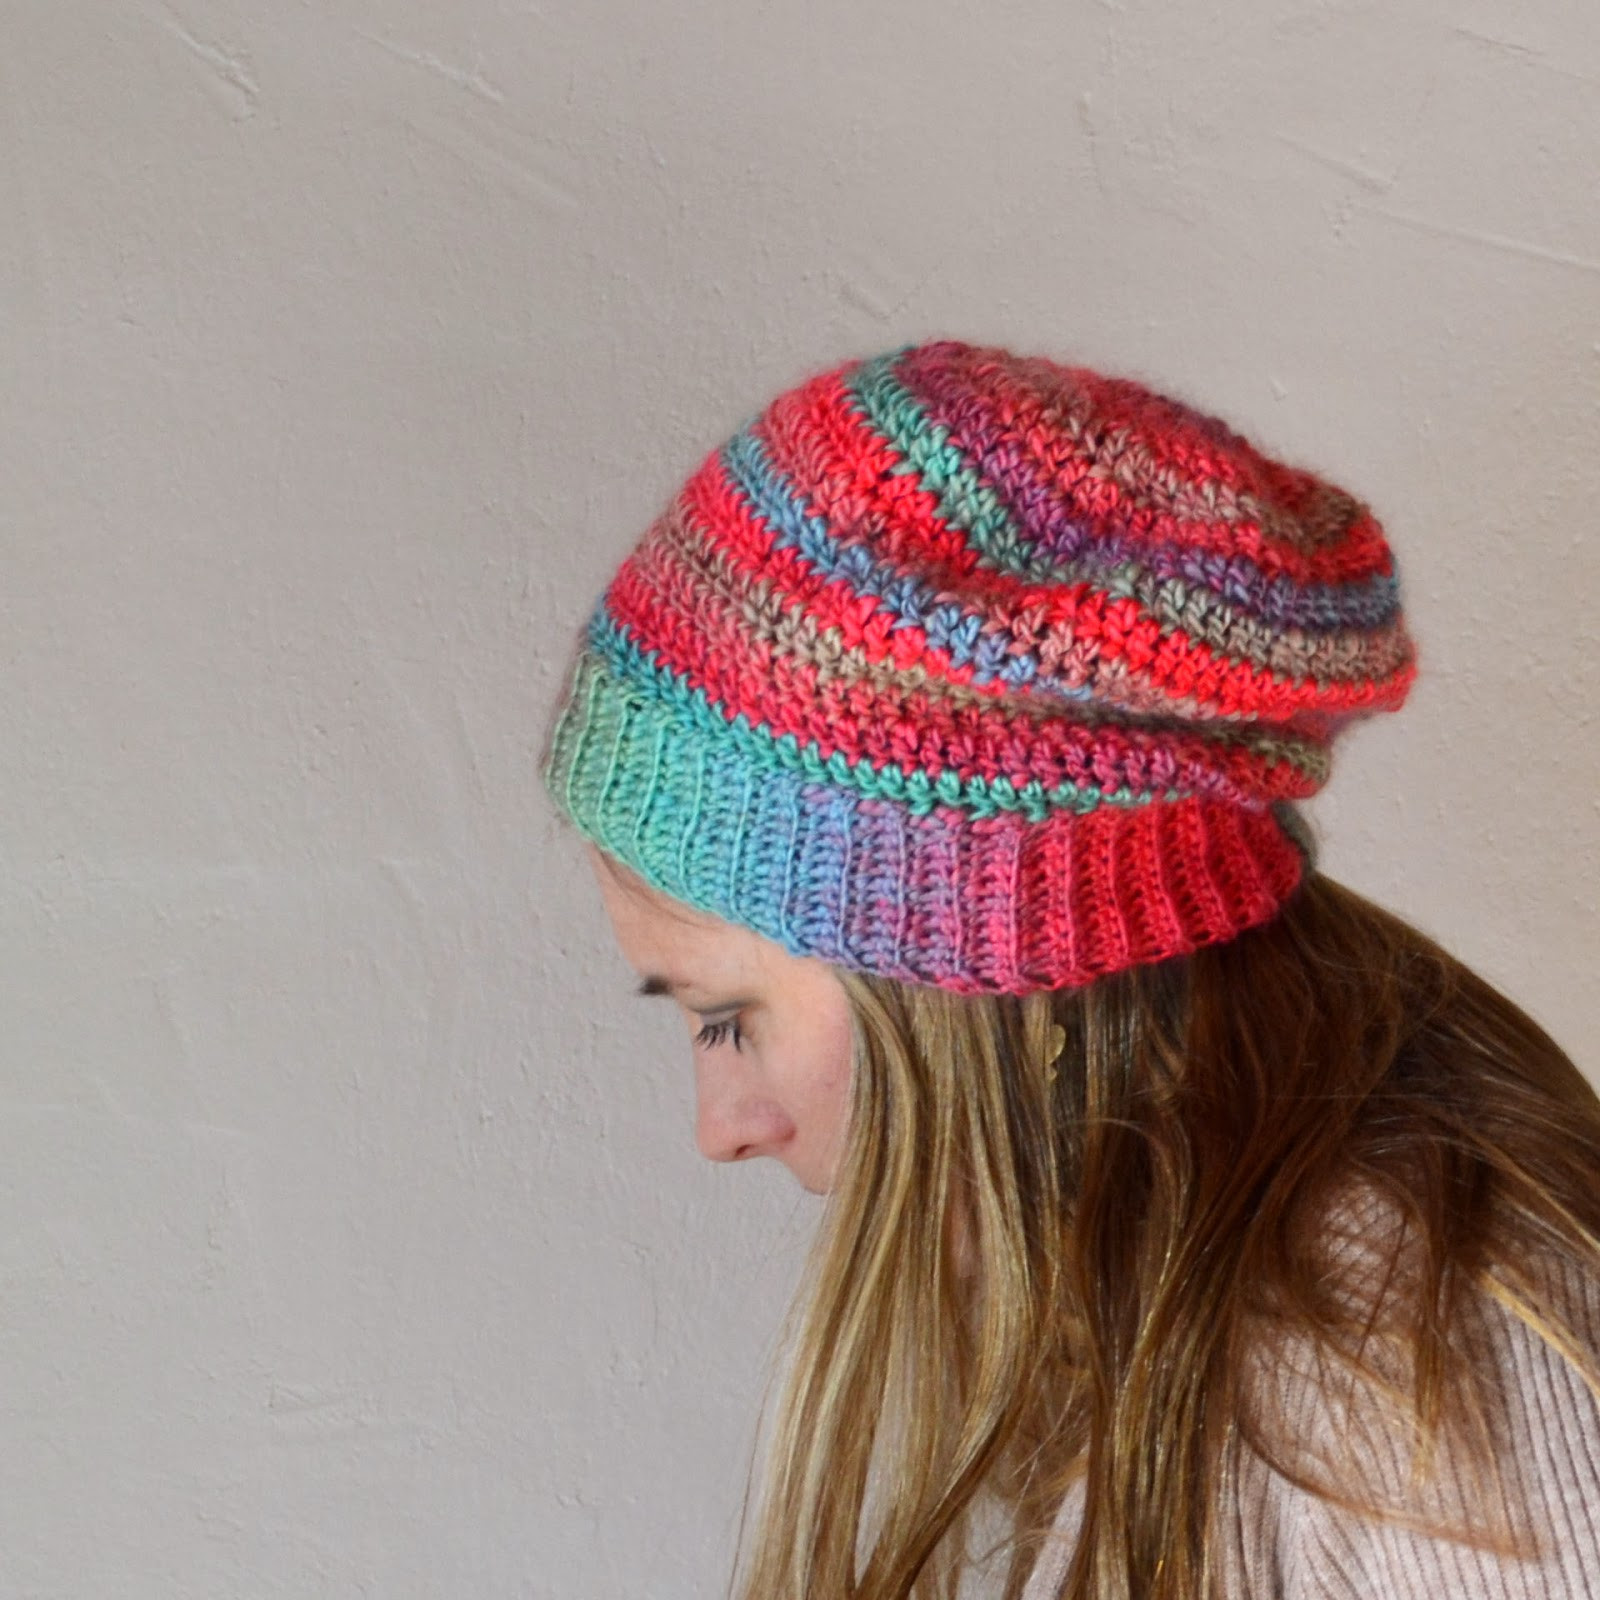 Crochet Slouchy Hat Pattern New 21 Slouchy Beanie Crochet Patterns for Beginners Of New 44 Pictures Crochet Slouchy Hat Pattern